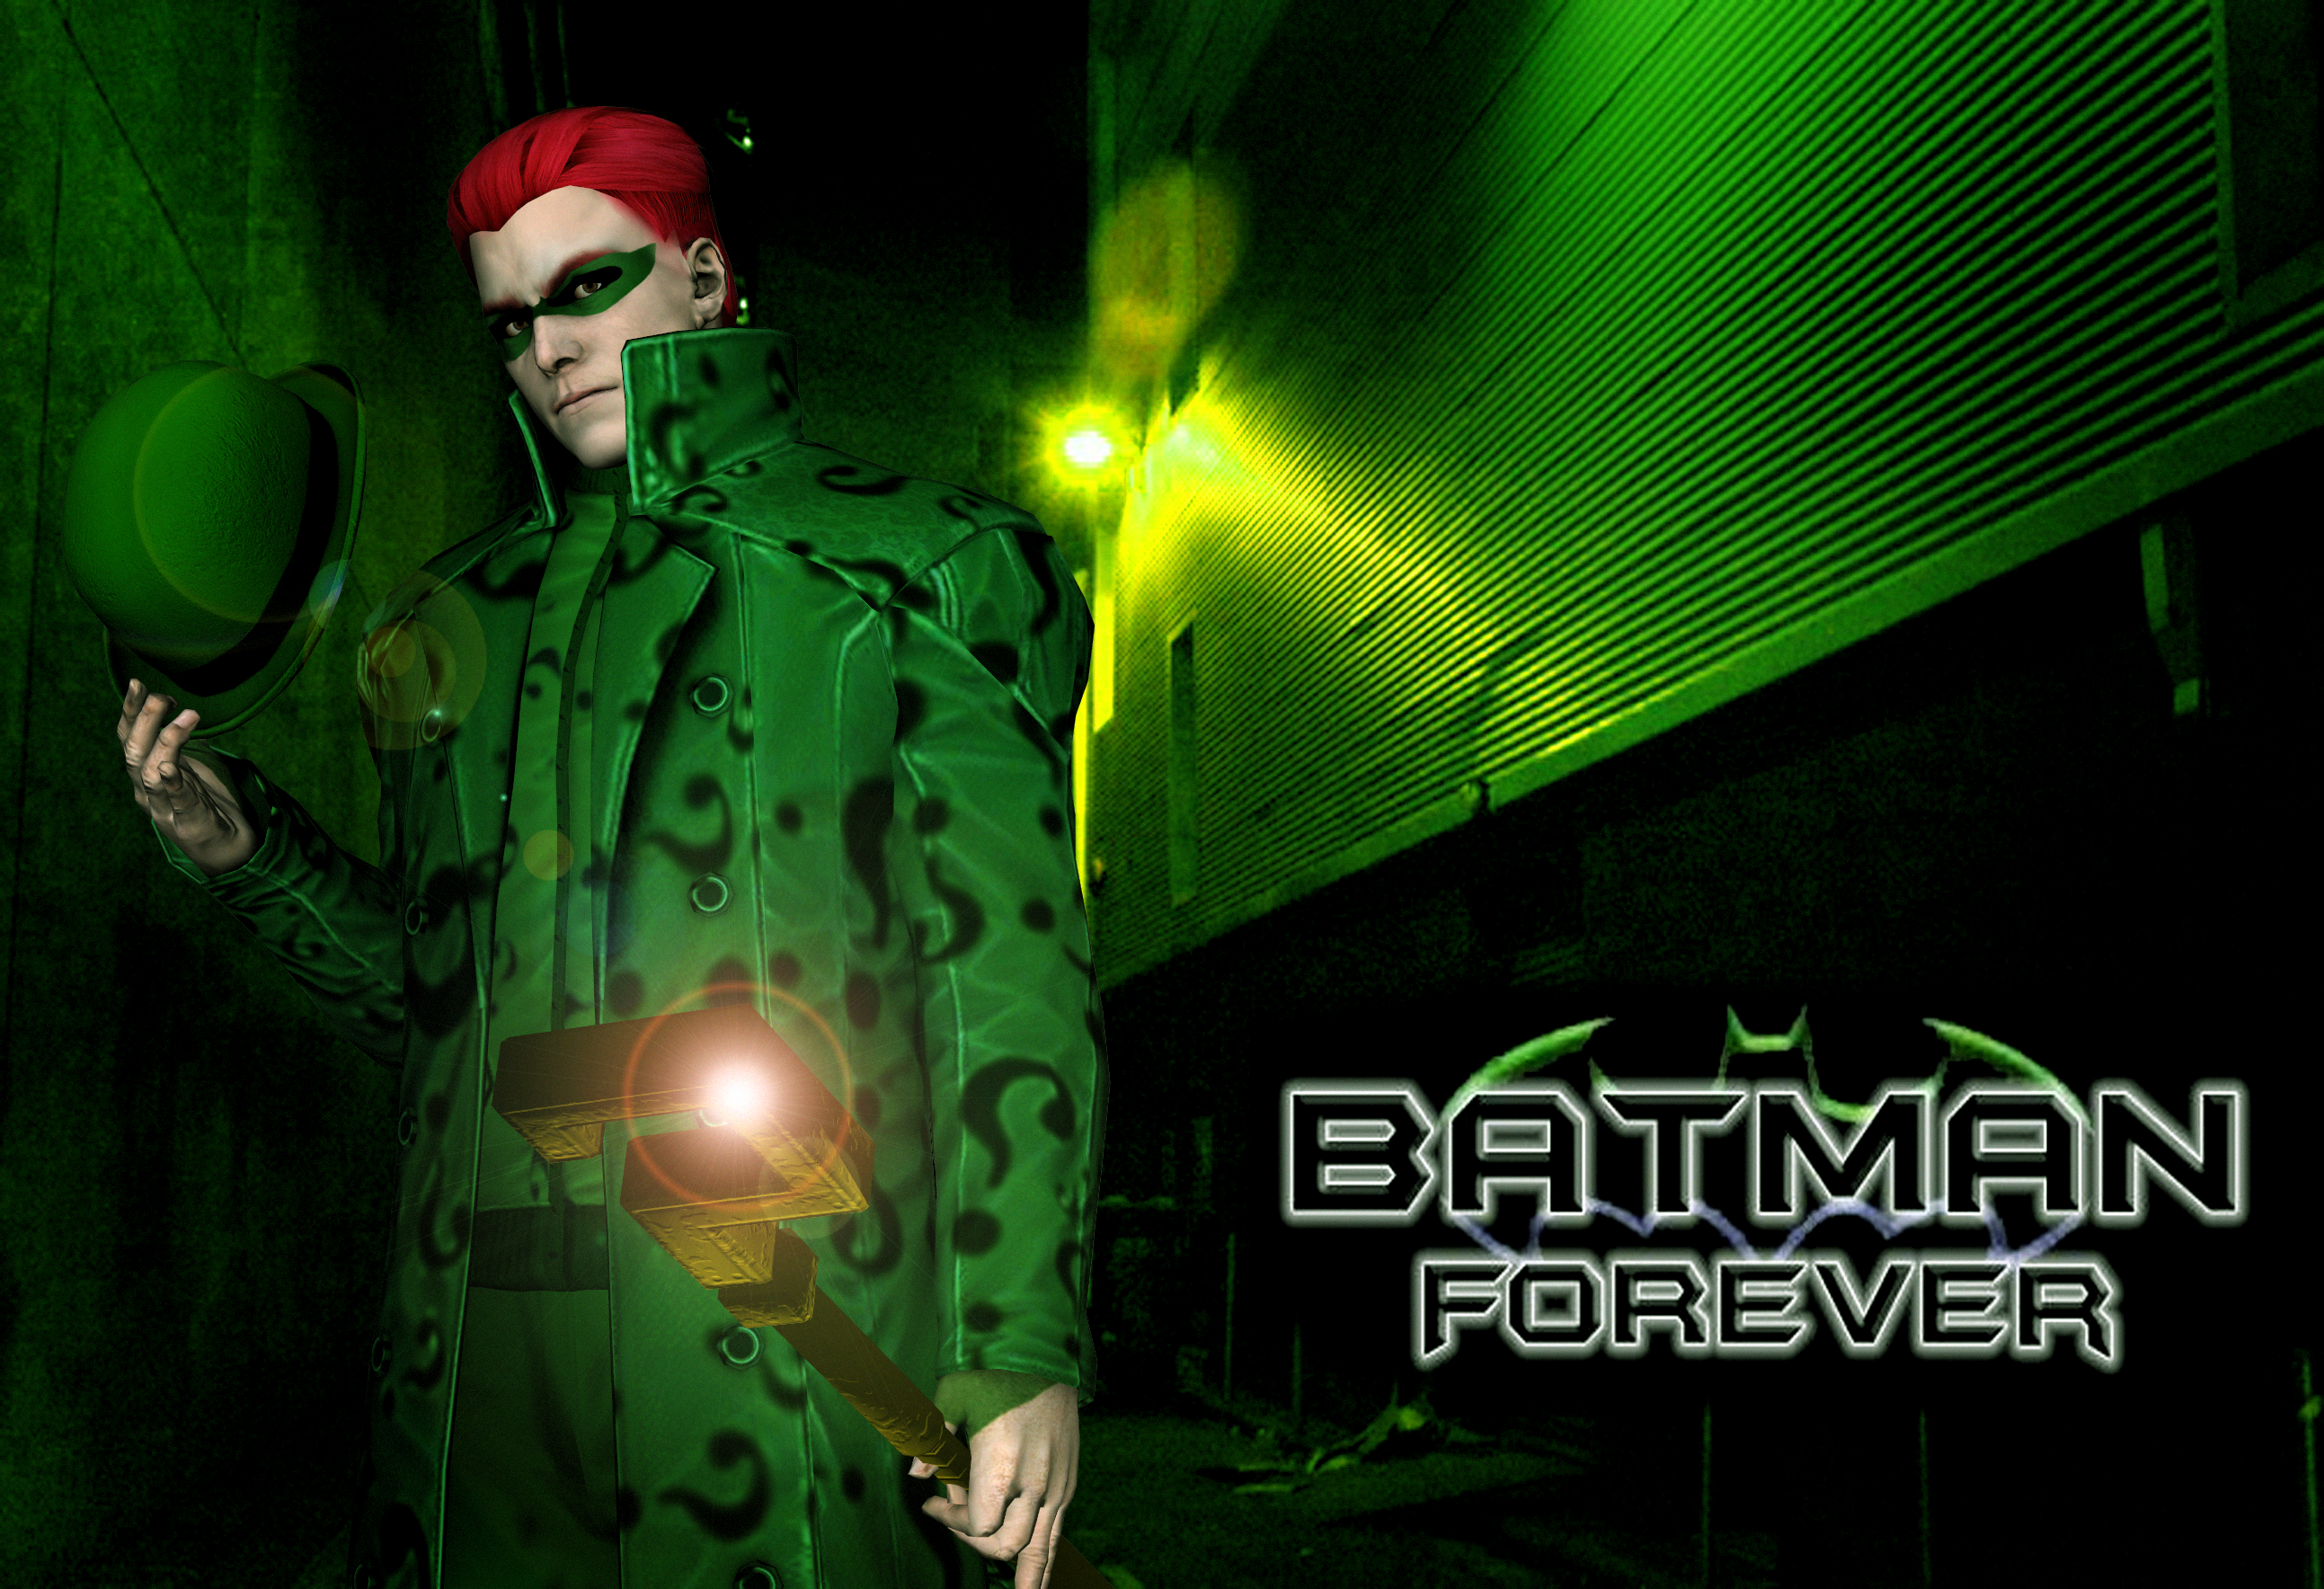 Jim Carrey And Tommy Lee Jones Portrayal Of Riddler Two Face Description From Deviantart I Searched For This On Bing Images